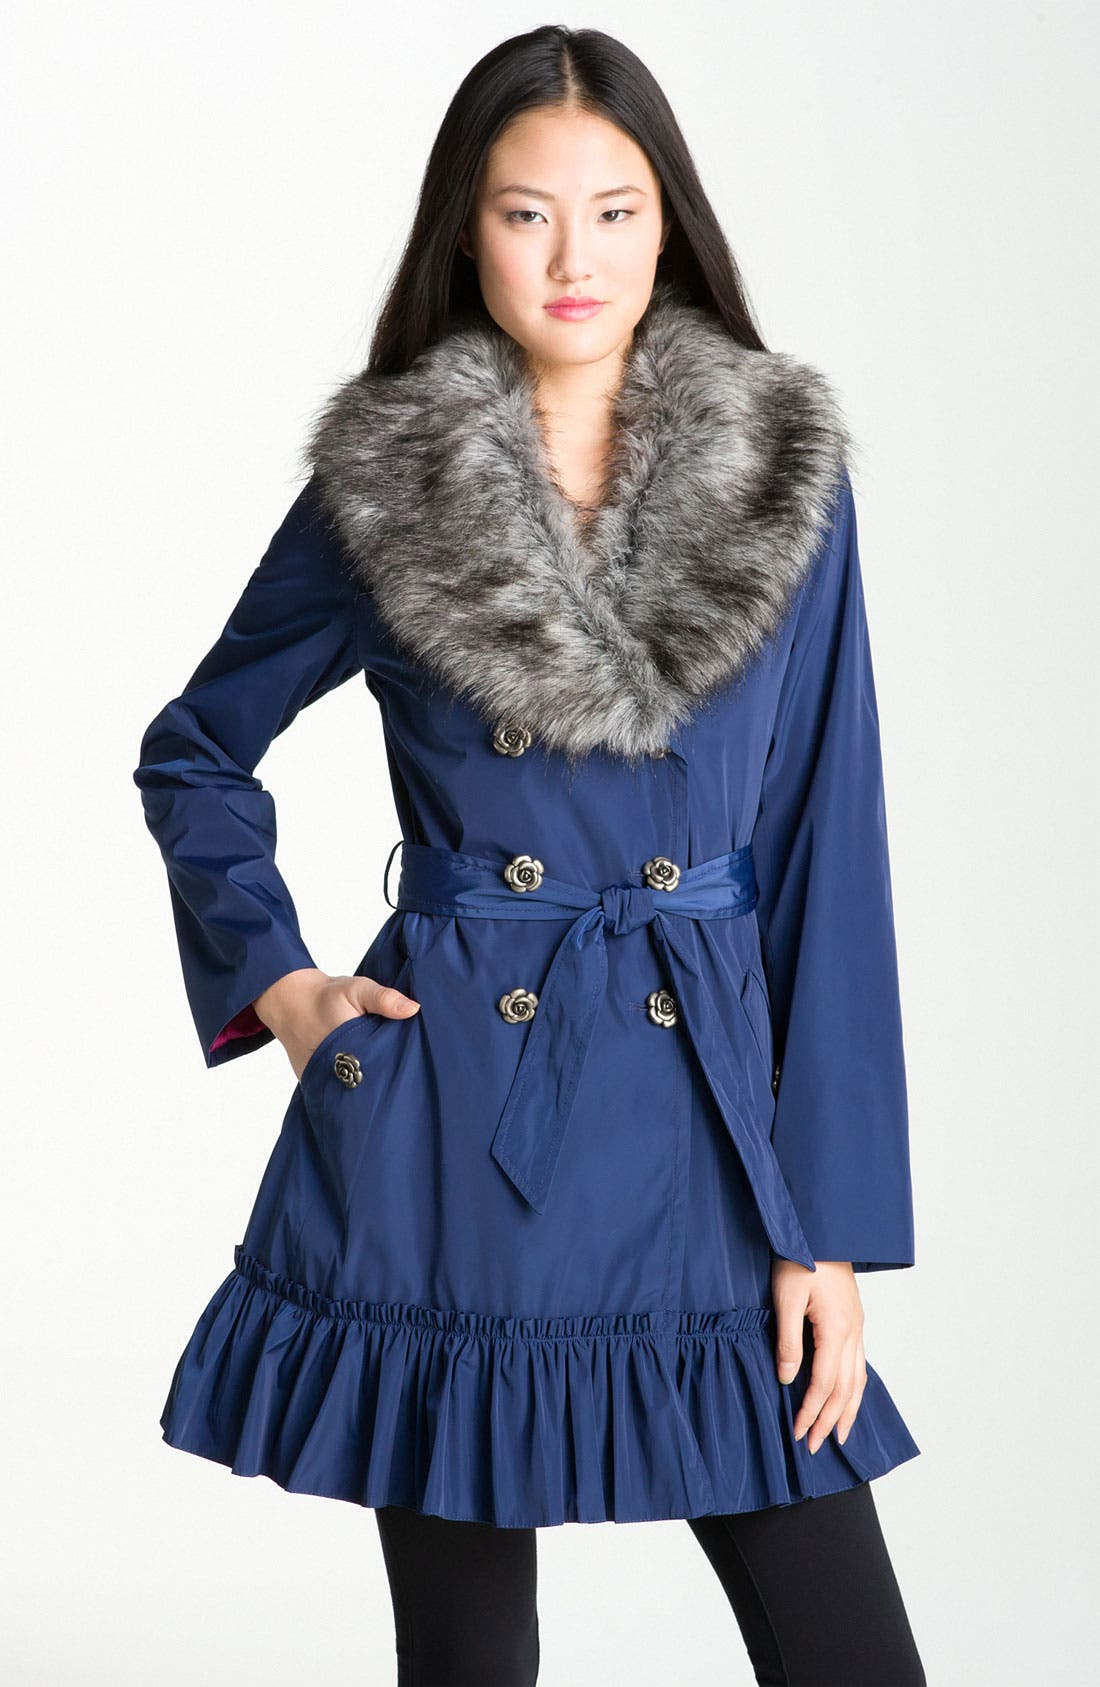 Alternate Image 1 Selected - Betsey Johnson Ruffle Hem Coat with Detachable Collar